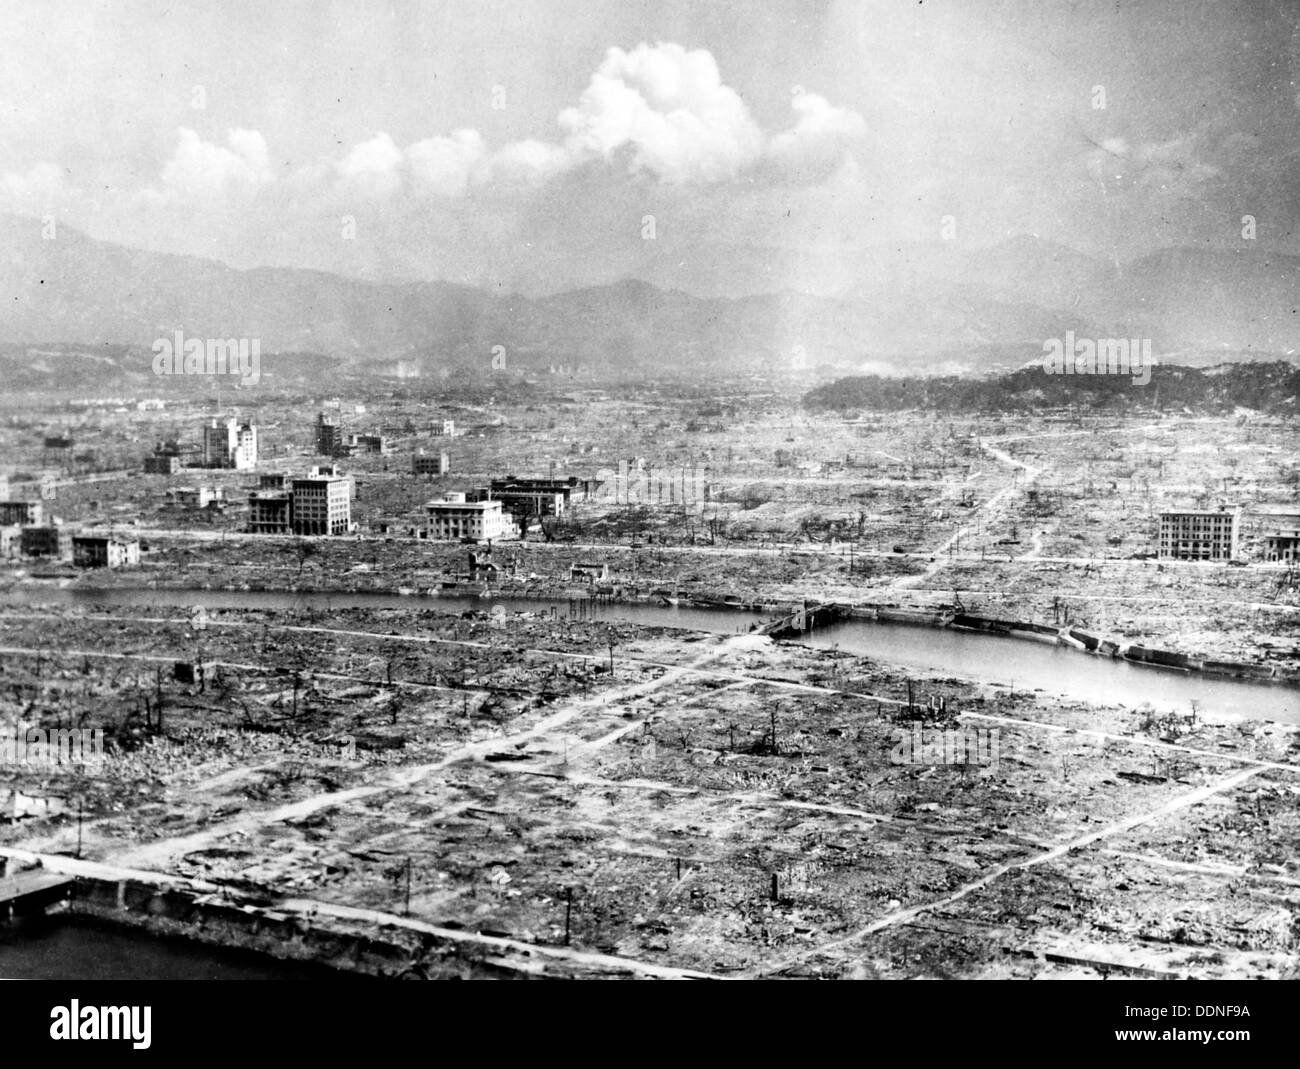 Hiroshima Atomic bomb aftermath, destruction of Hiroshima, Japan - Stock Image